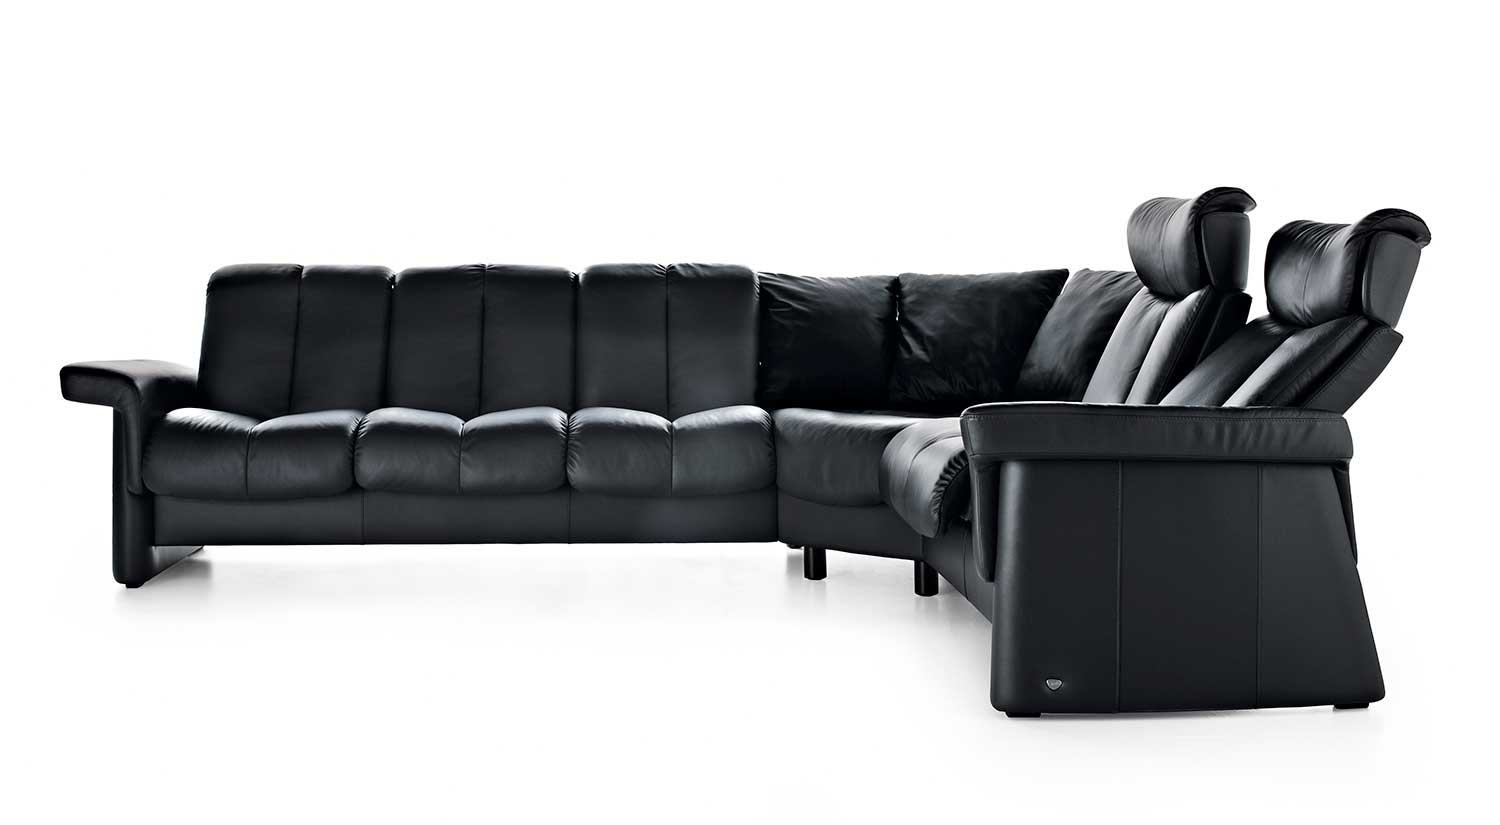 Legend Stressless Sectional ...  sc 1 st  Circle Furniture : ekornes sectional - Sectionals, Sofas & Couches